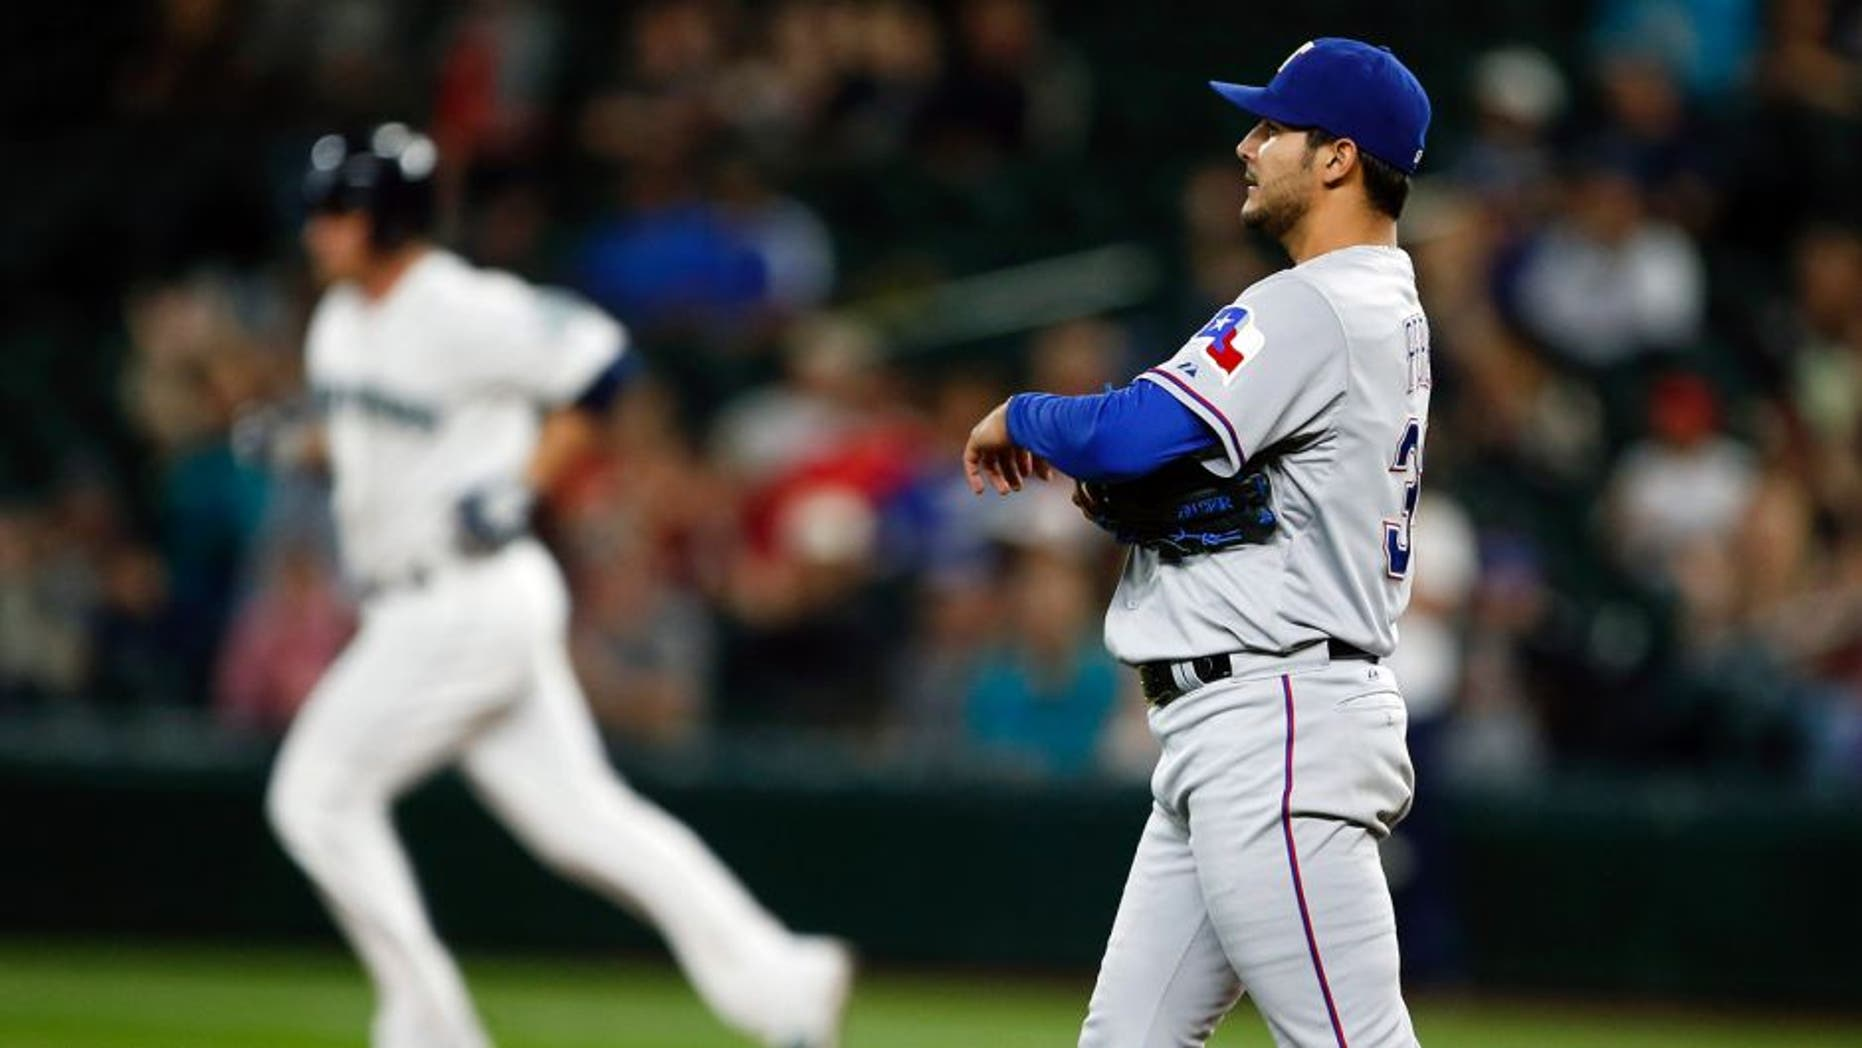 Sep 9, 2015; Seattle, WA, USA; Texas Rangers pitcher Martin Perez (33) walks around the mound after surrendering a two-run home run against the Seattle Mariners during the third inning at Safeco Field. Mandatory Credit: Joe Nicholson-USA TODAY Sports